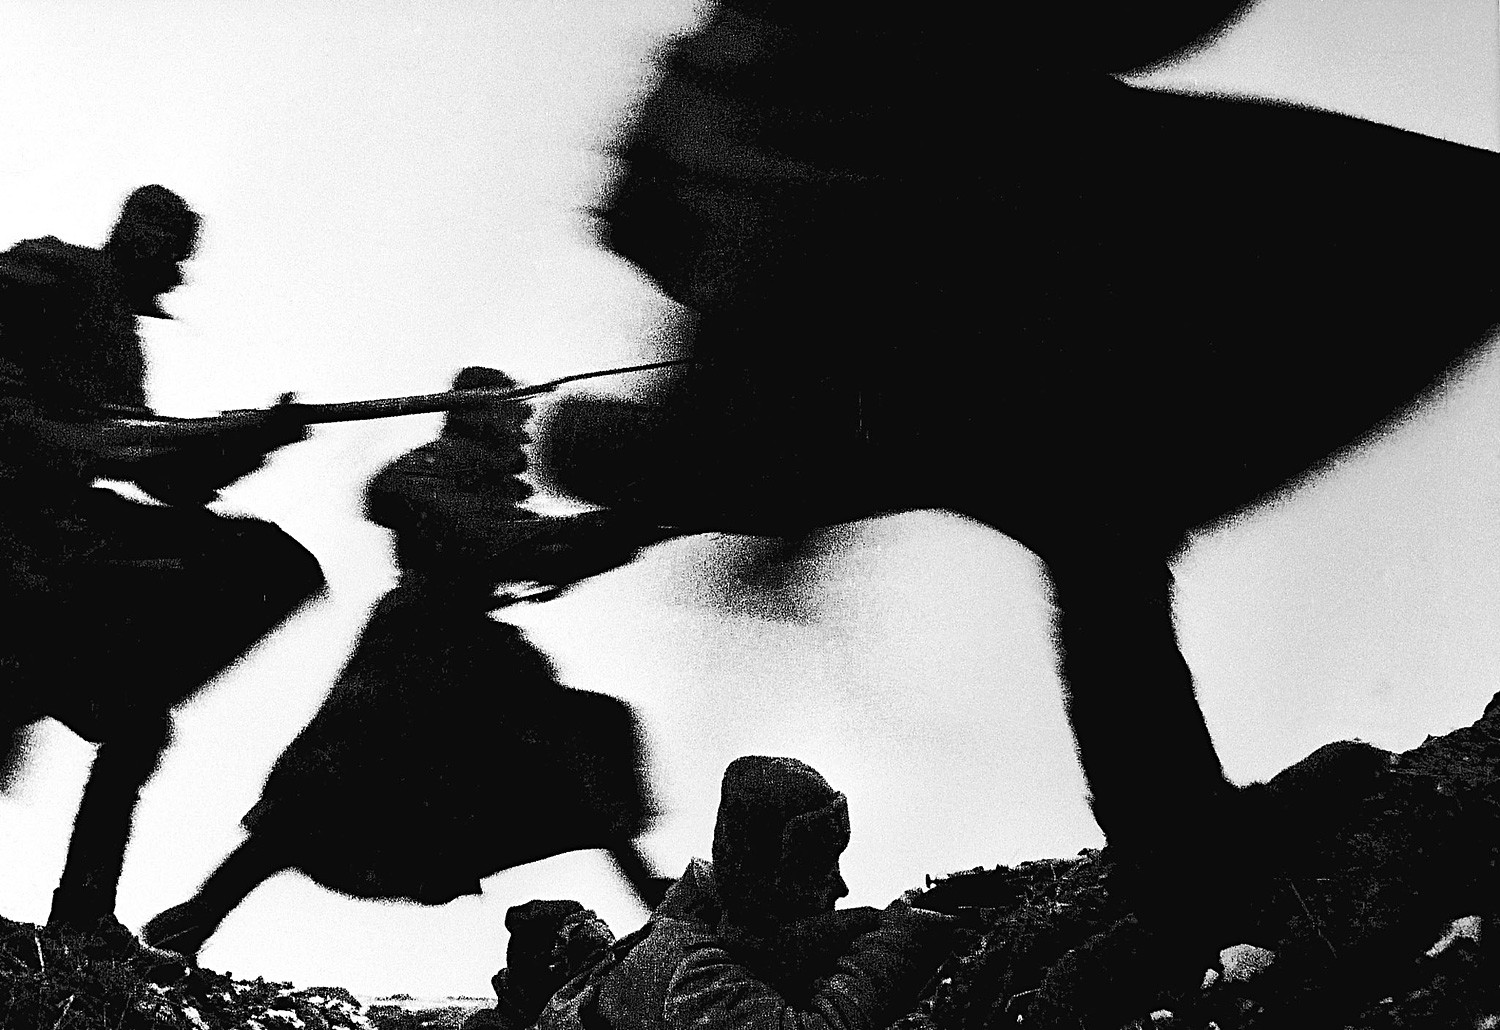 Soviet soldiers attacking.